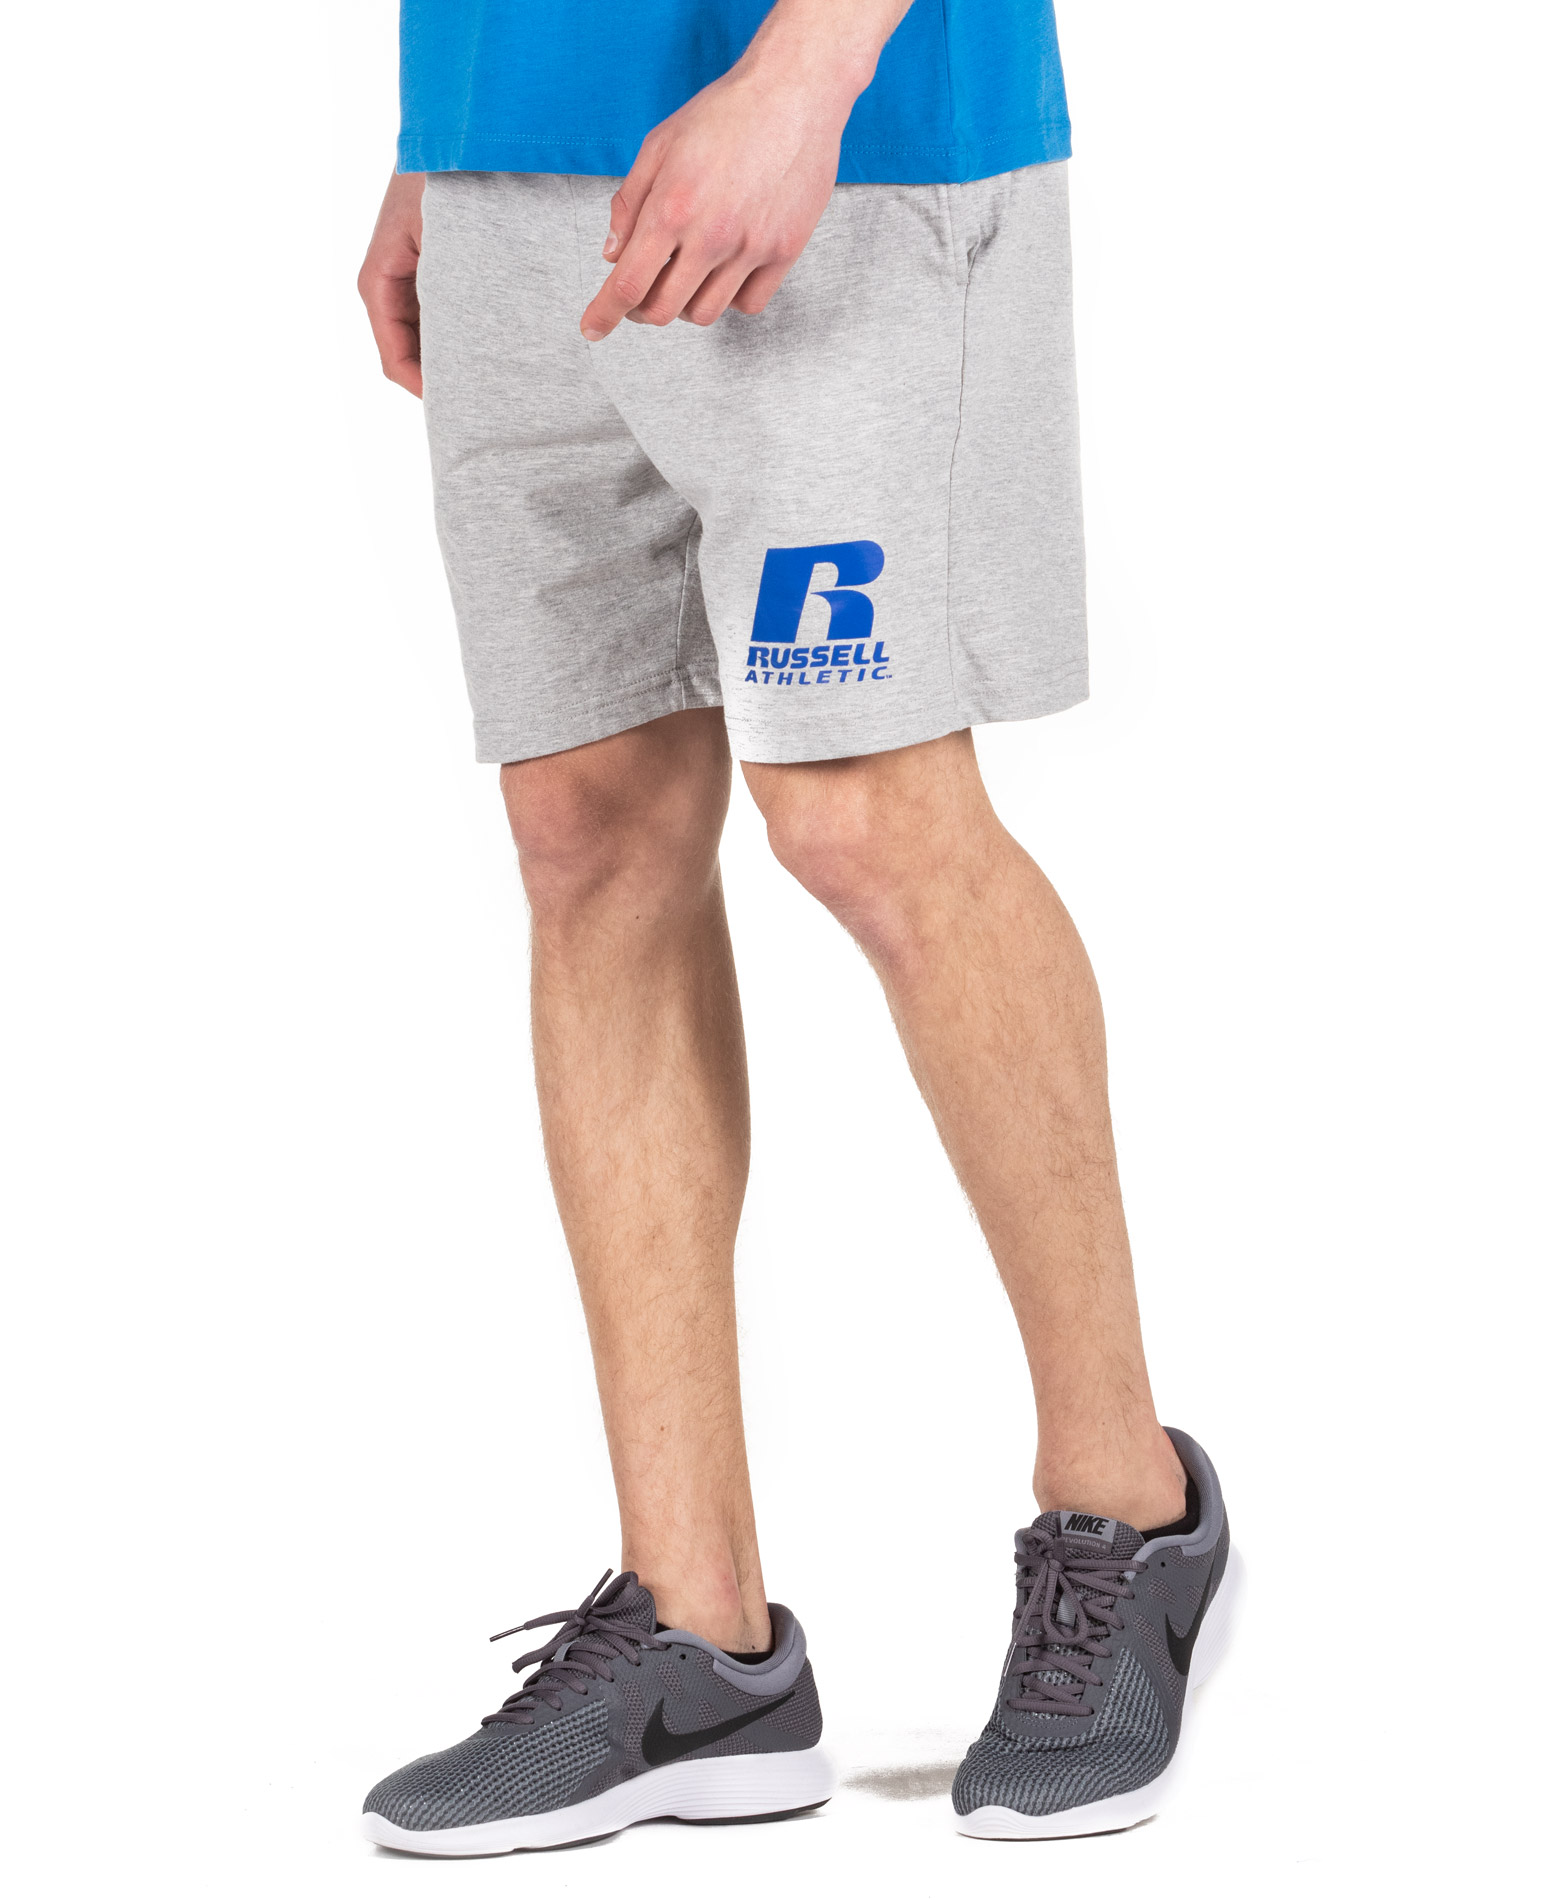 Russell Athletic MEN'S SHORTS A9-039-1-091 Γκρί